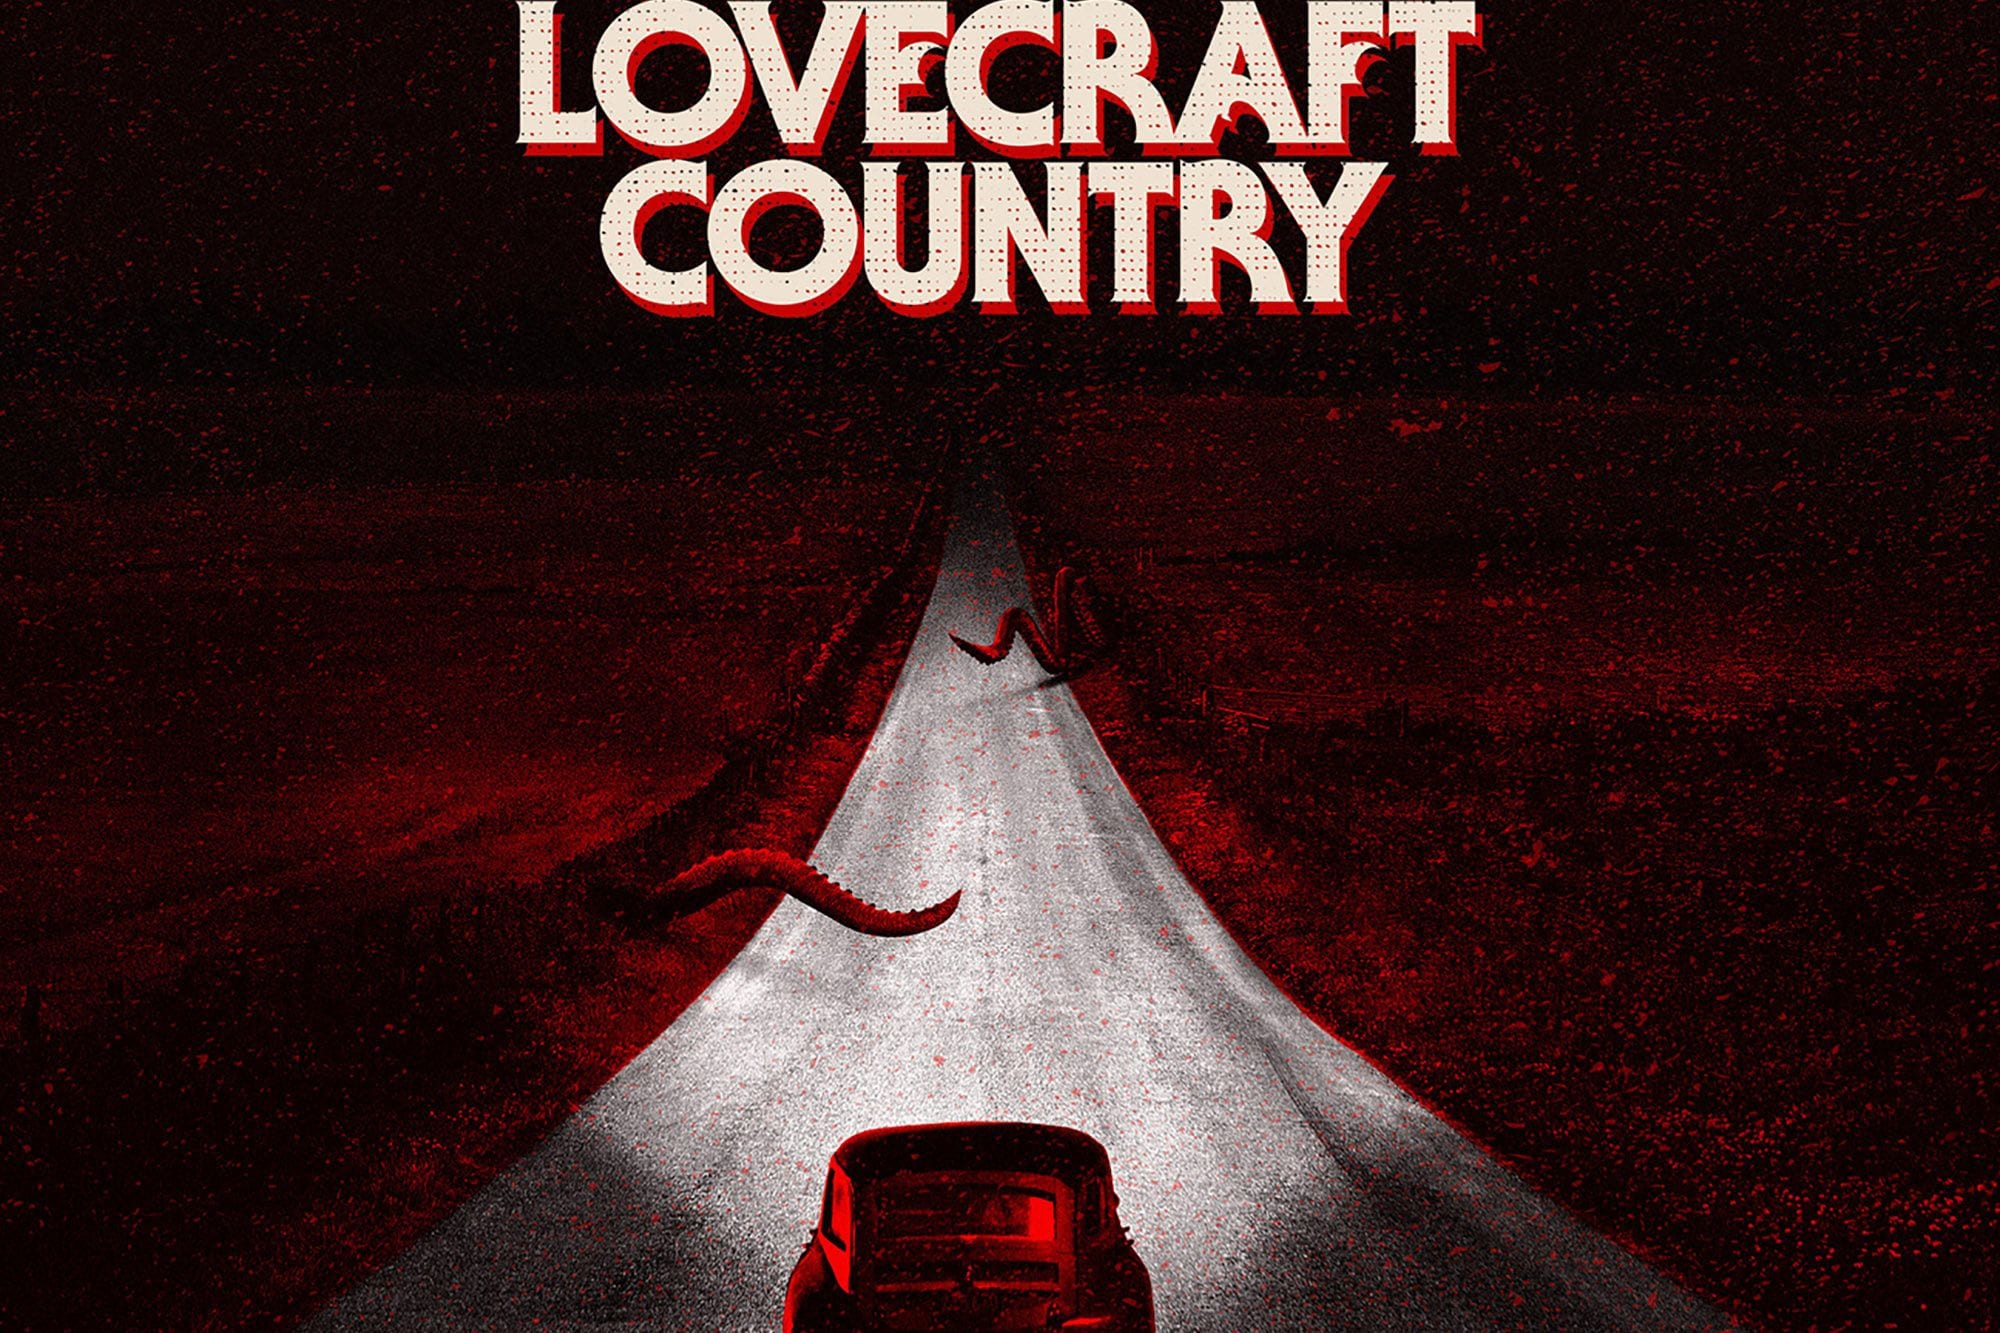 HBO's 'Lovecraft Country' Is Heady, Poetic, and Mangled